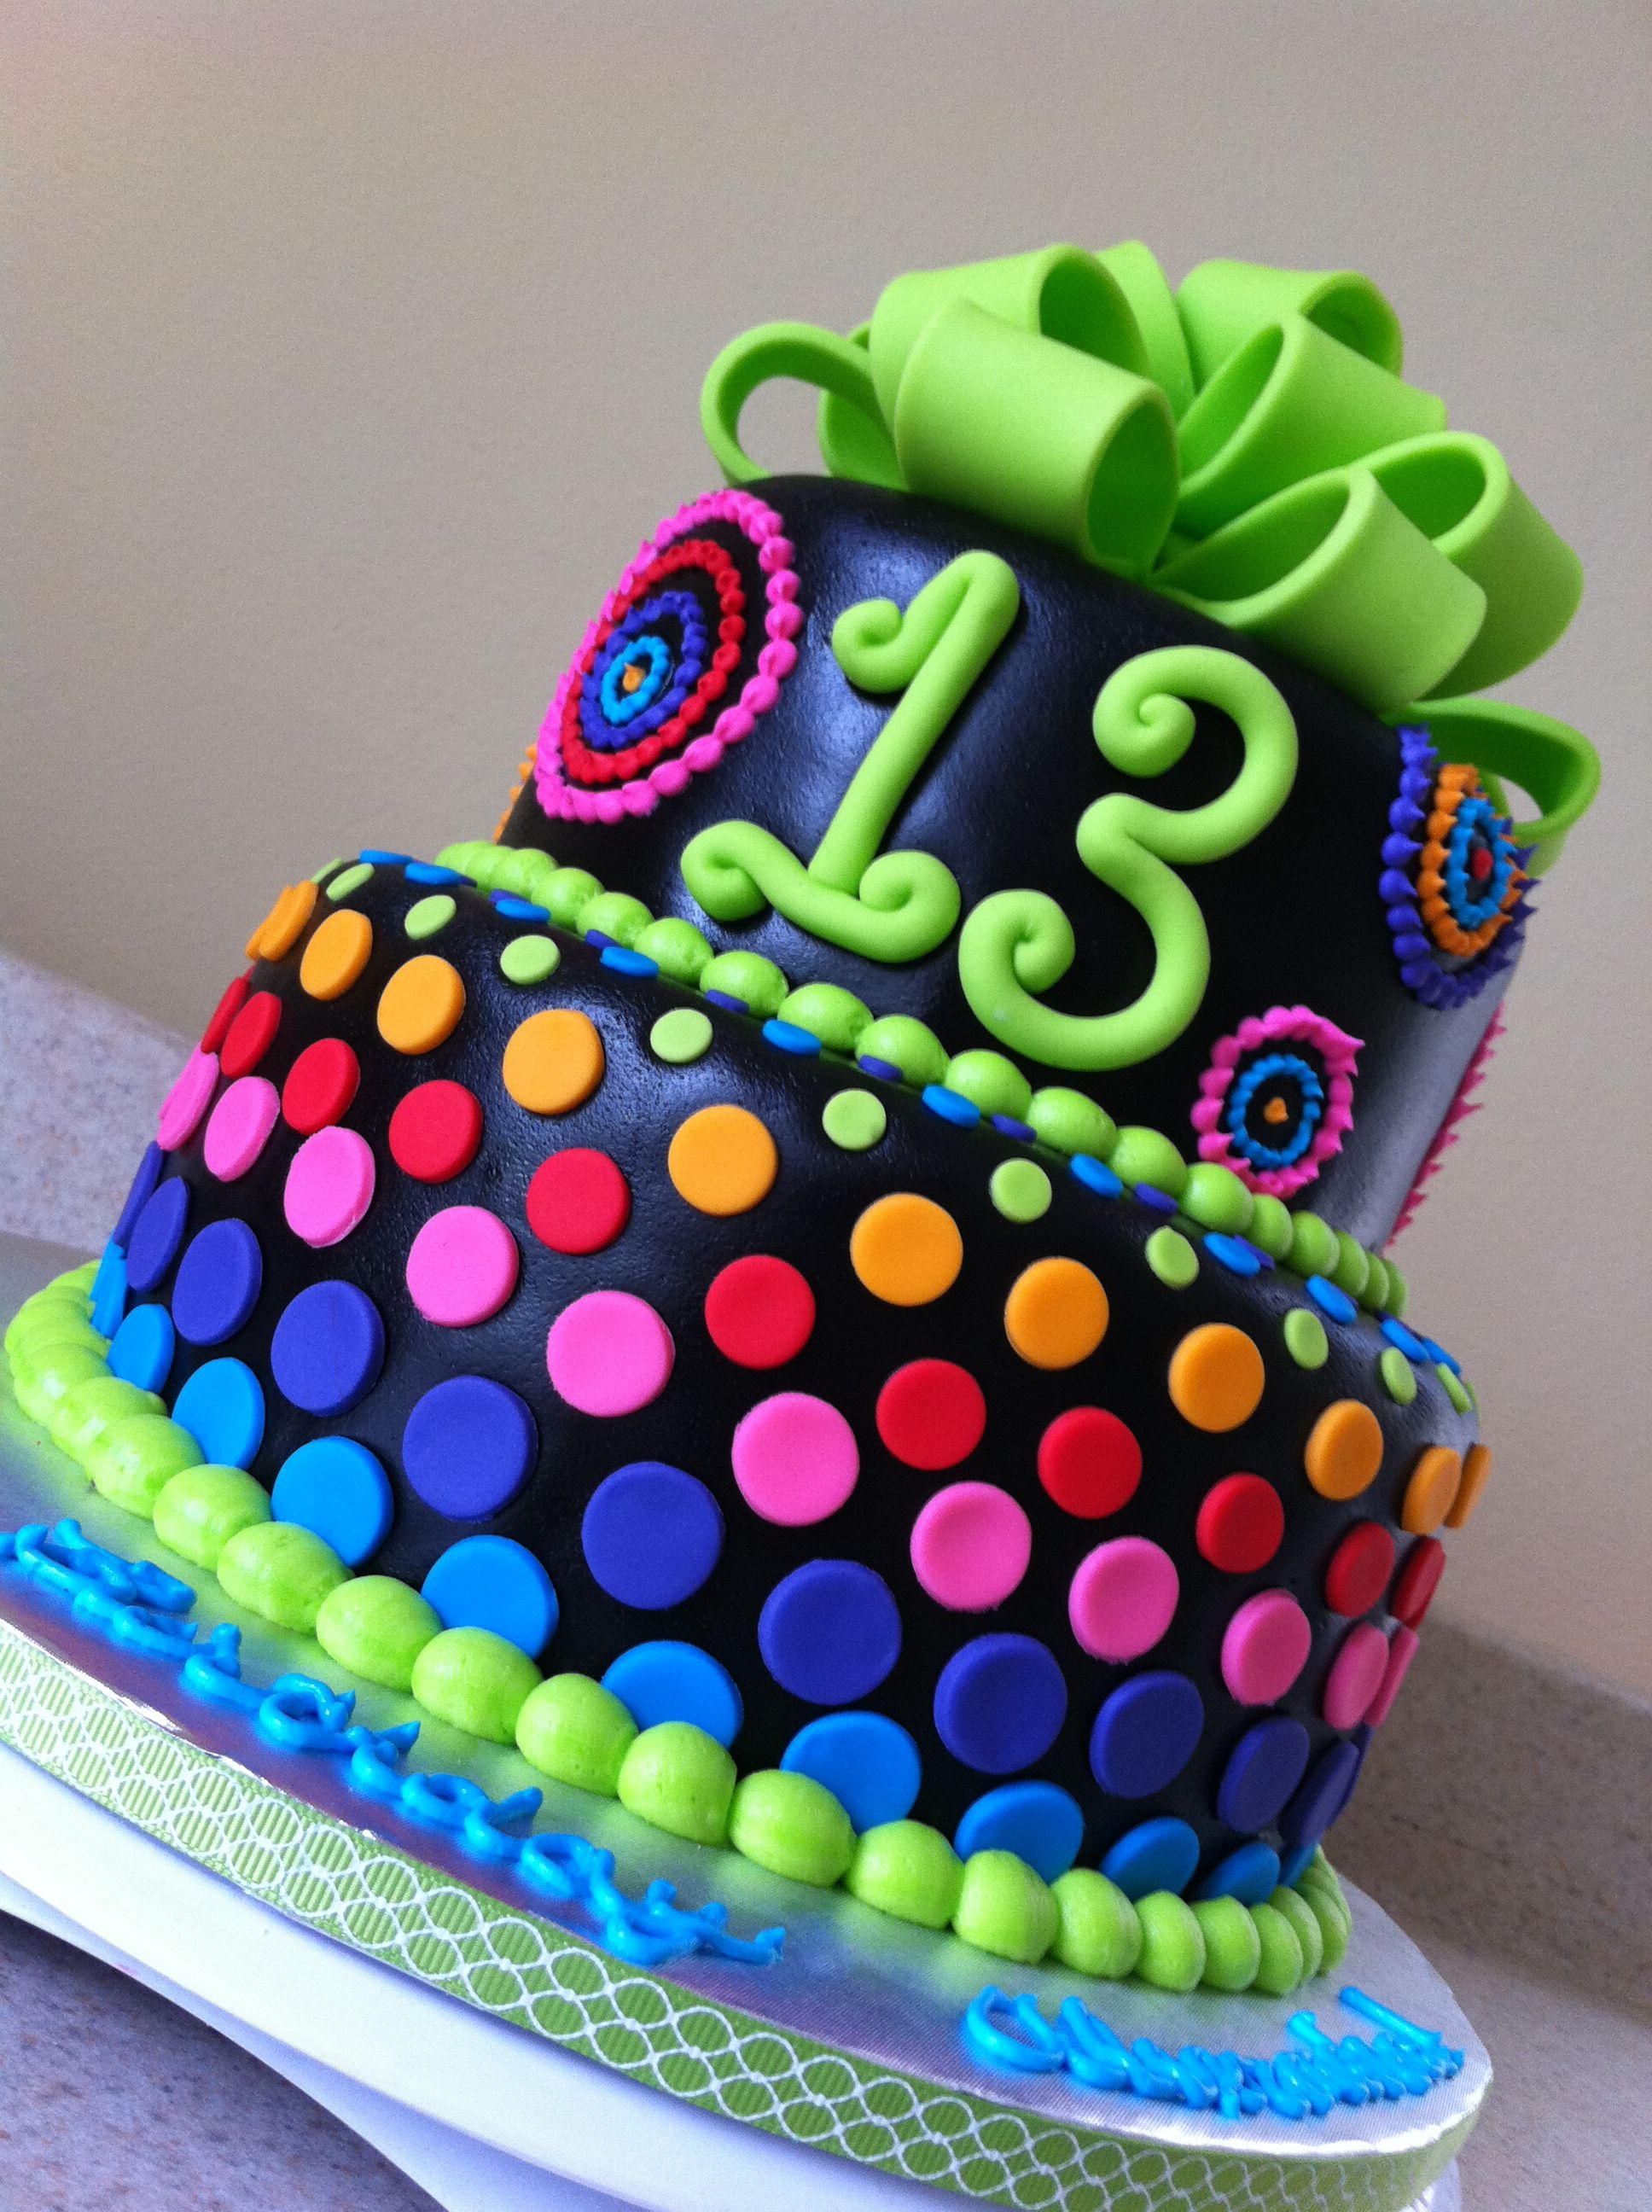 Pin By Kaitlyn Meland On Cakes And Decorating Pinterest